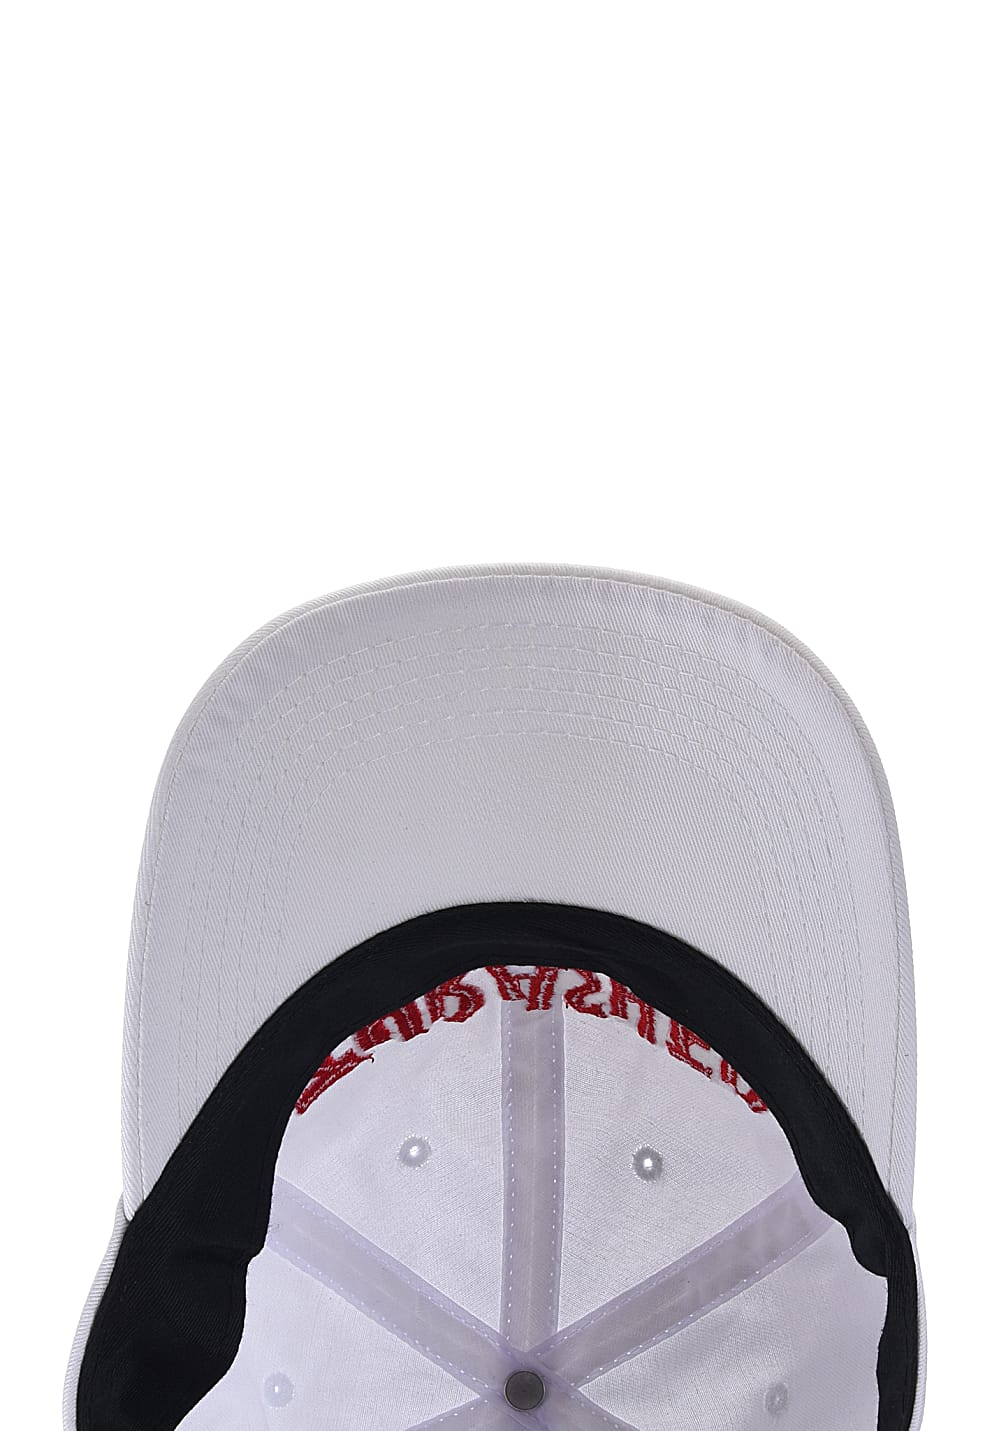 e7c3ff97dee Next. -5%. THRASHER. Neckface Invert Old Timer - Strapback Cap. Regular  Price  Save ...